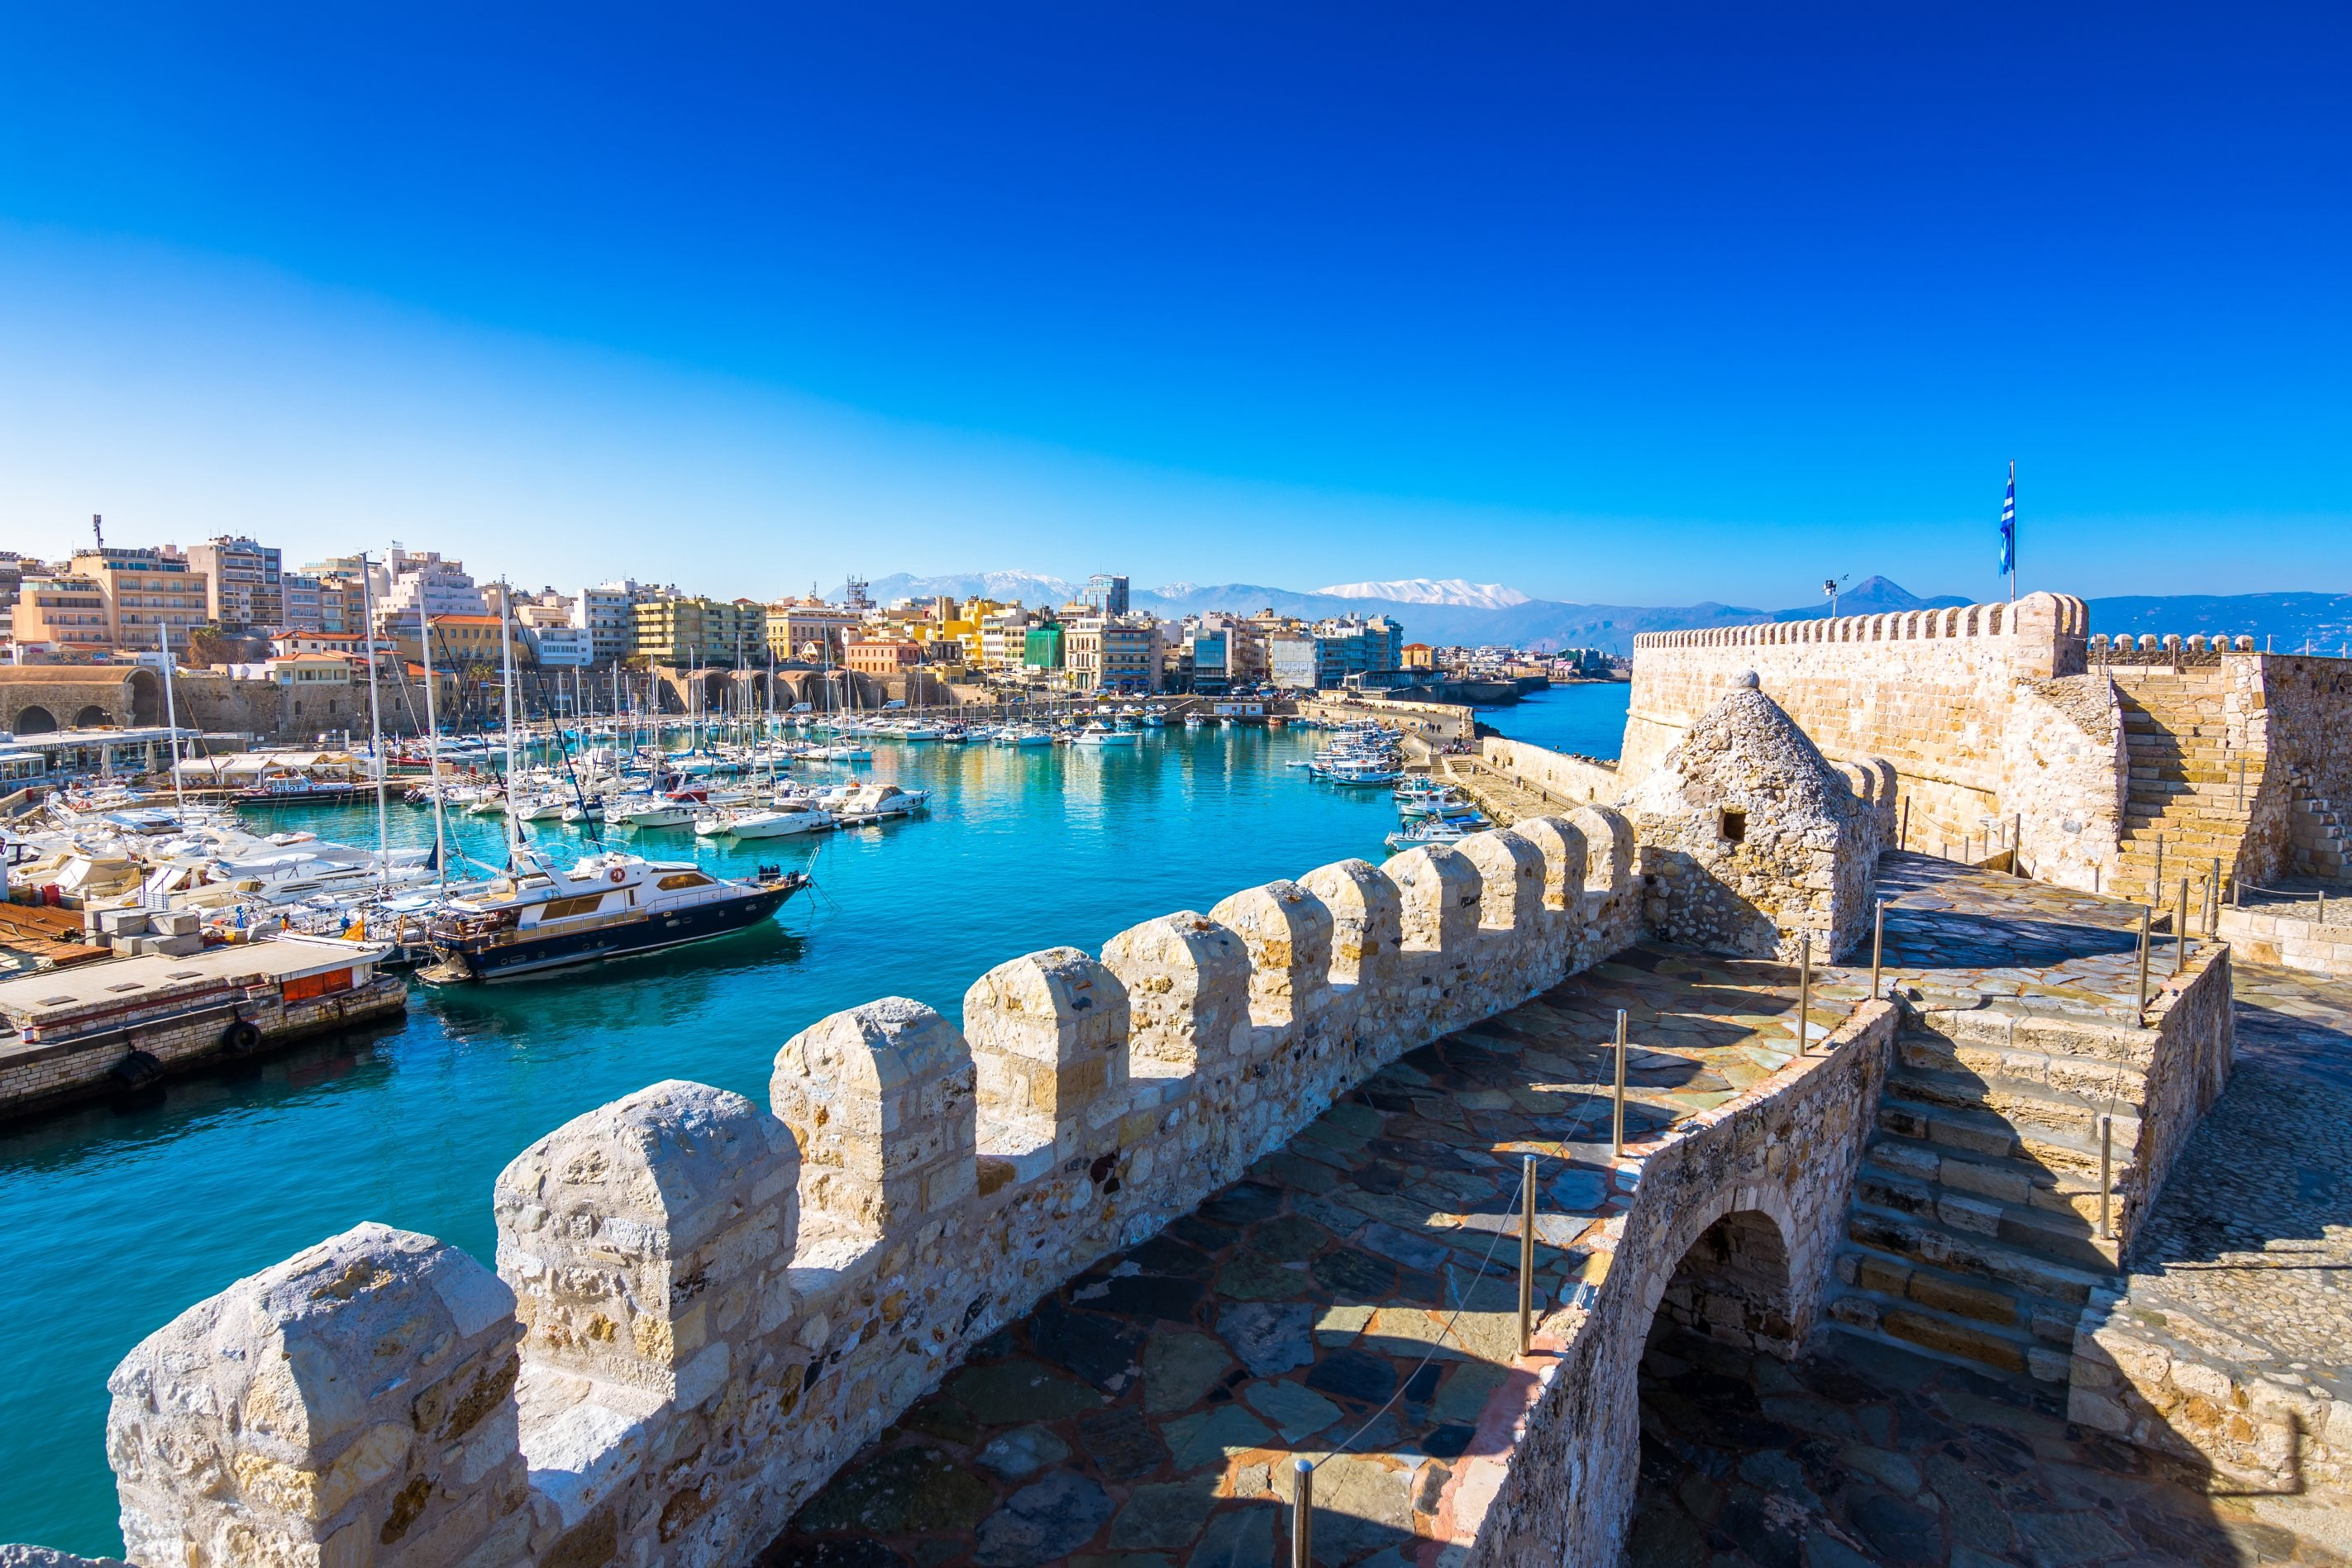 Heraklion Harbour Heraklion Crete Greece